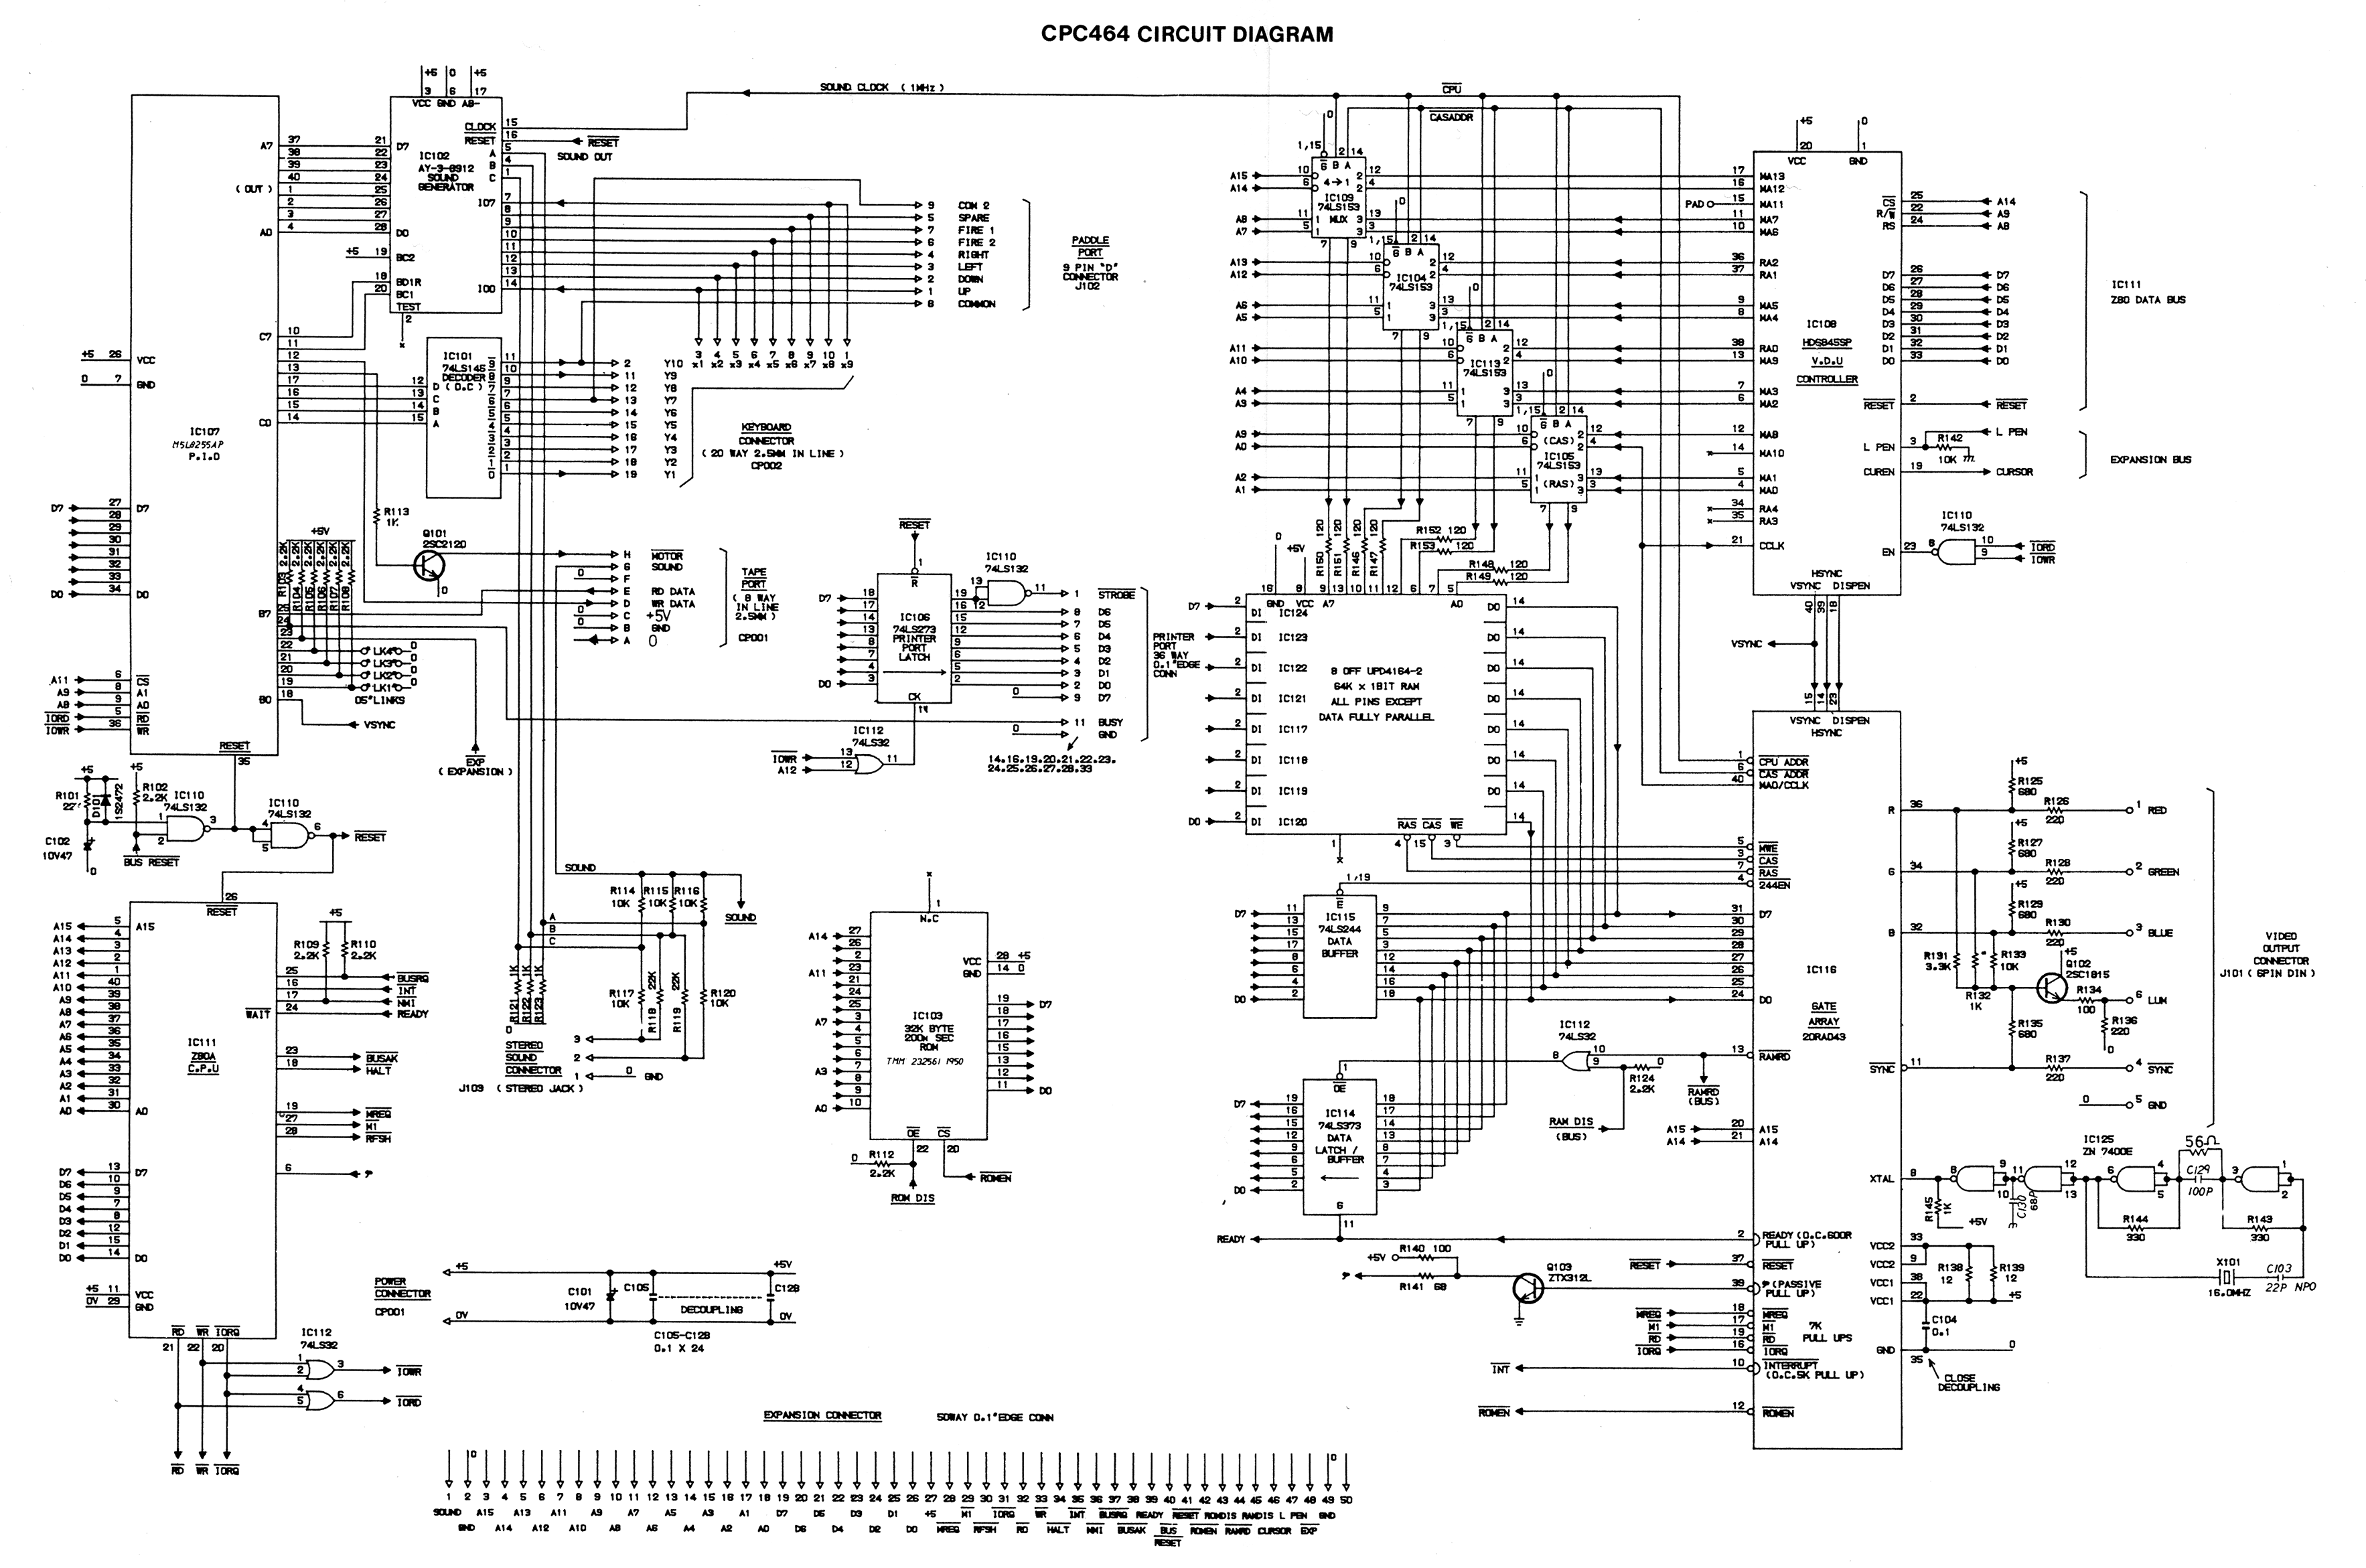 MSI Motherboard Wiring Diagram together with 2005 Ford Focus AUX Adapter also Acer Aspire One Motherboard Diagram moreover Headphone Jack Wiring Diagram besides CPU Z Memory. on n1996 wiring diagram